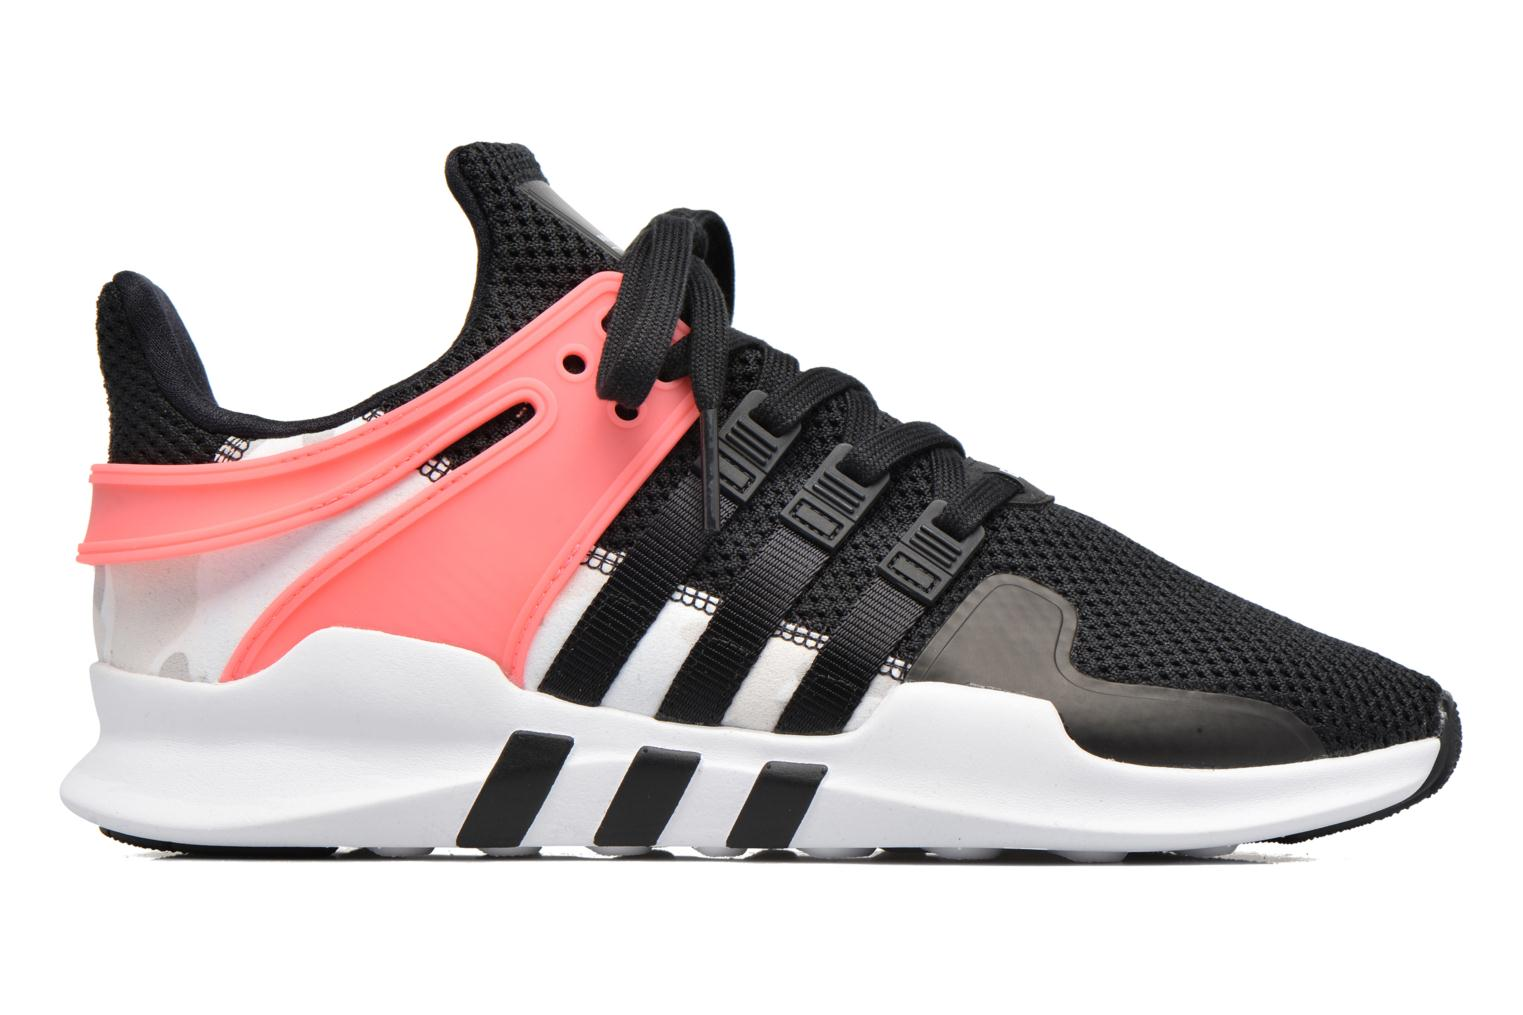 Grdemg/Noiess/Turbo Adidas Originals Eqt Support Adv (Gris)